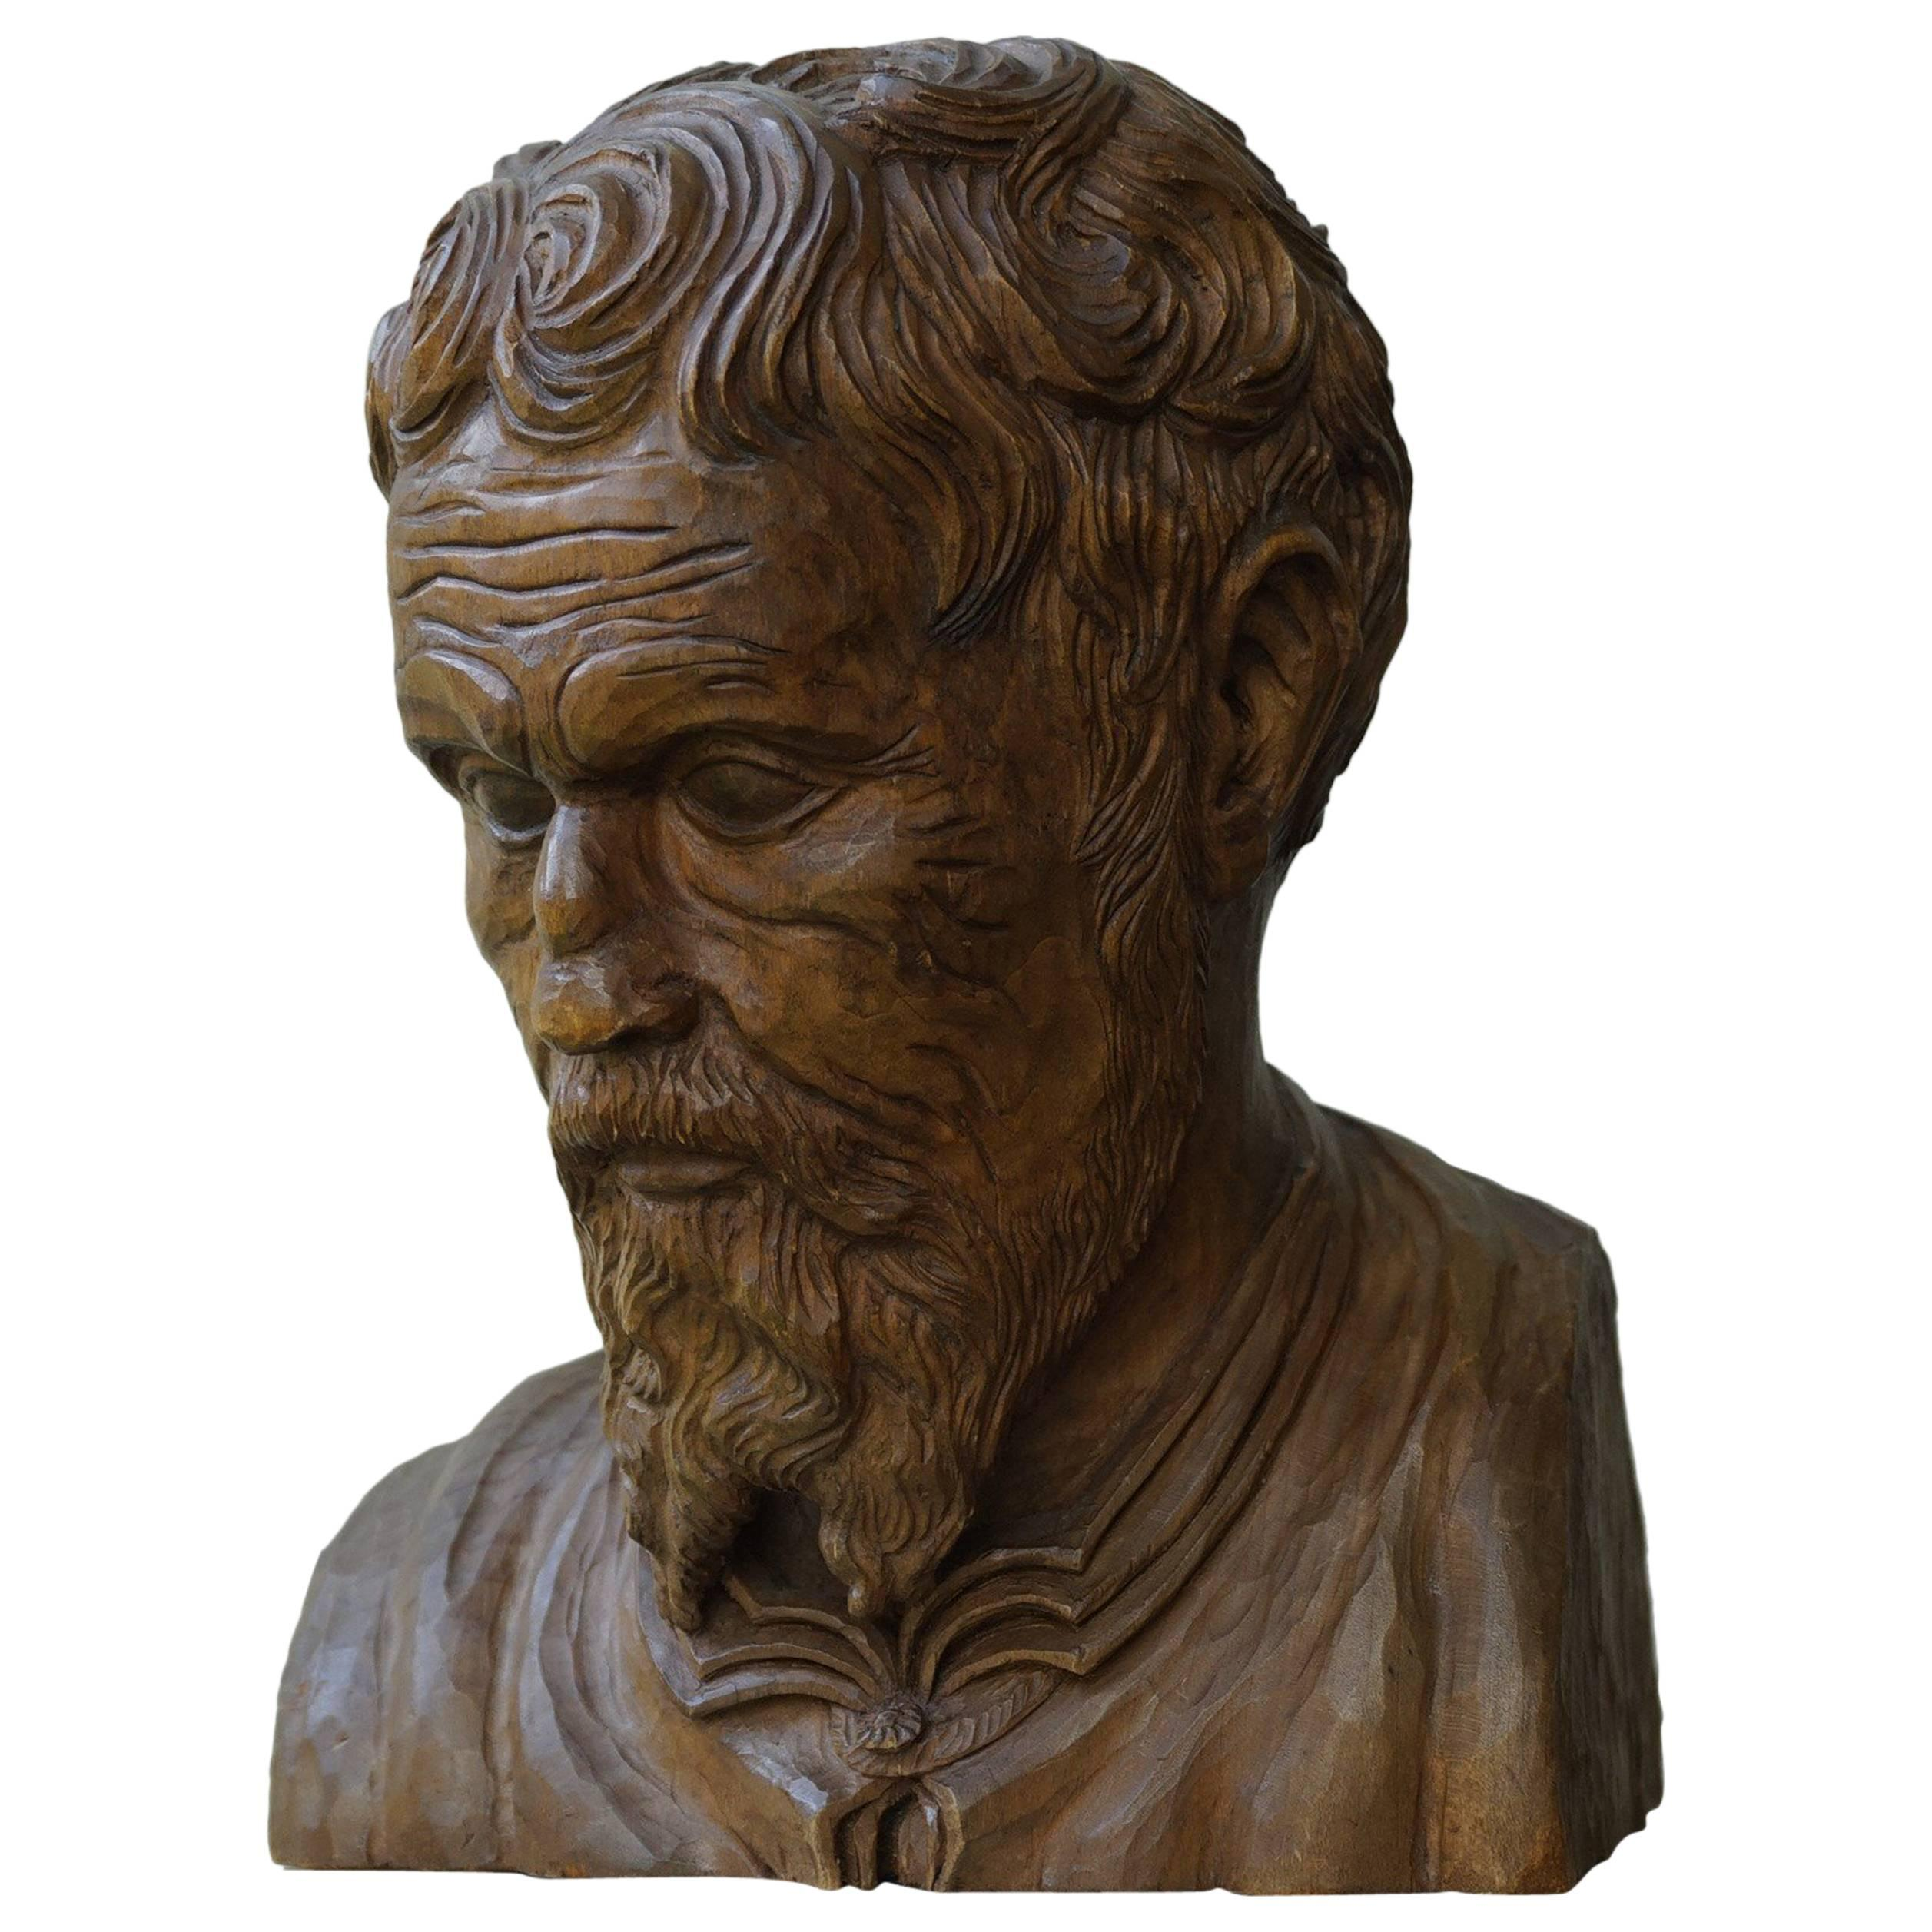 Unique Hand-Carved Sculpture/Bust of Michelangelo Buonarroti by Walther Kieser